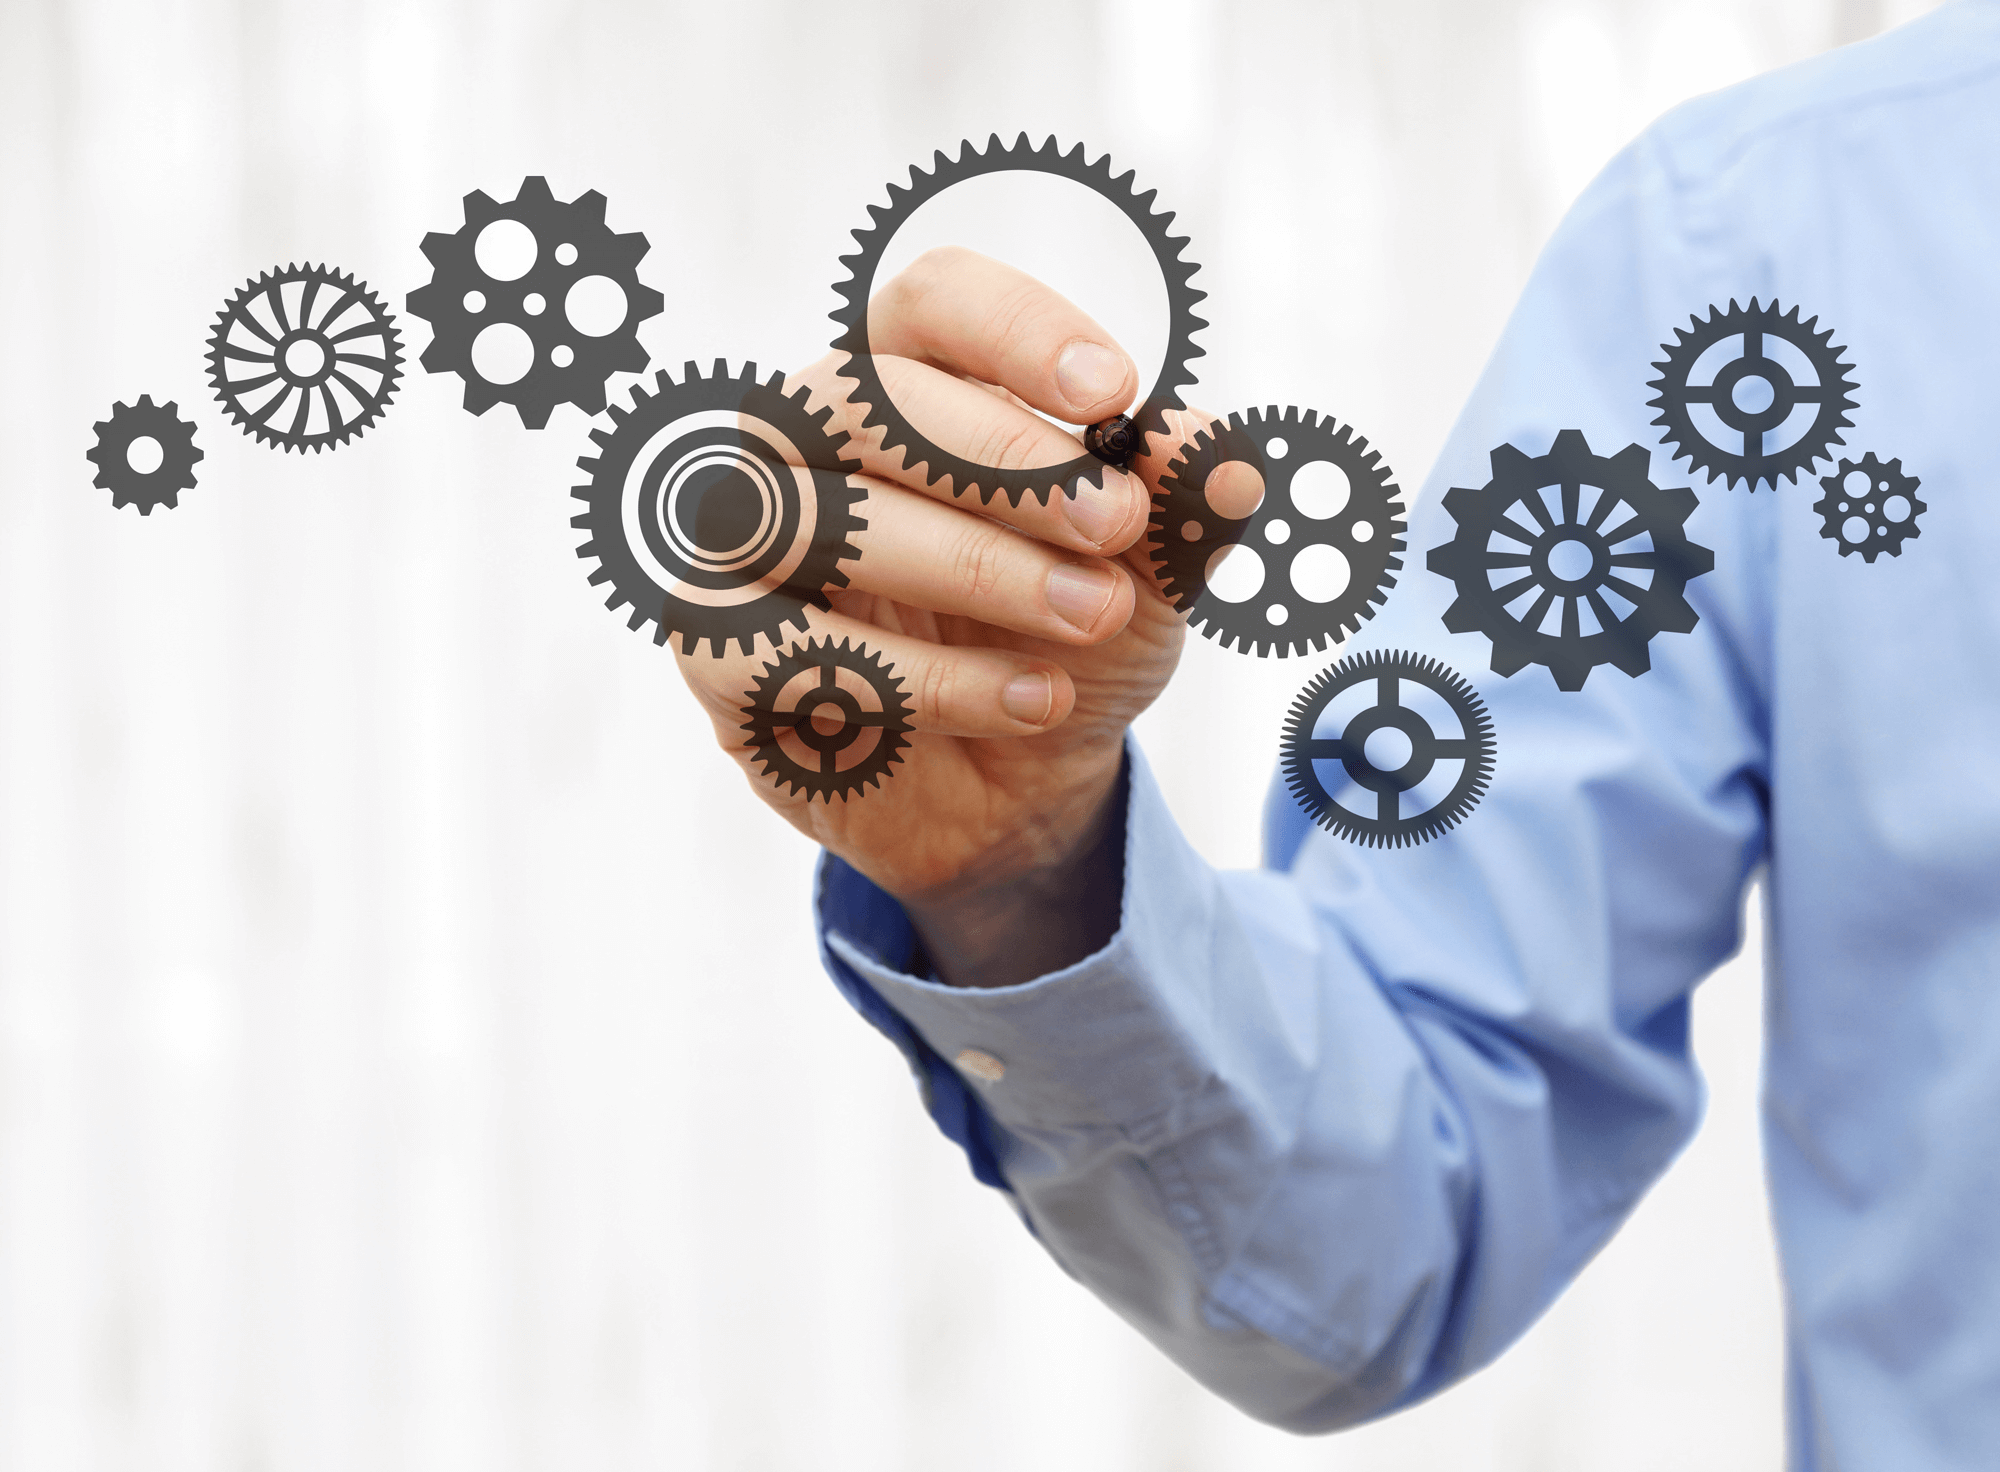 Decision making and Business Intelligence tools